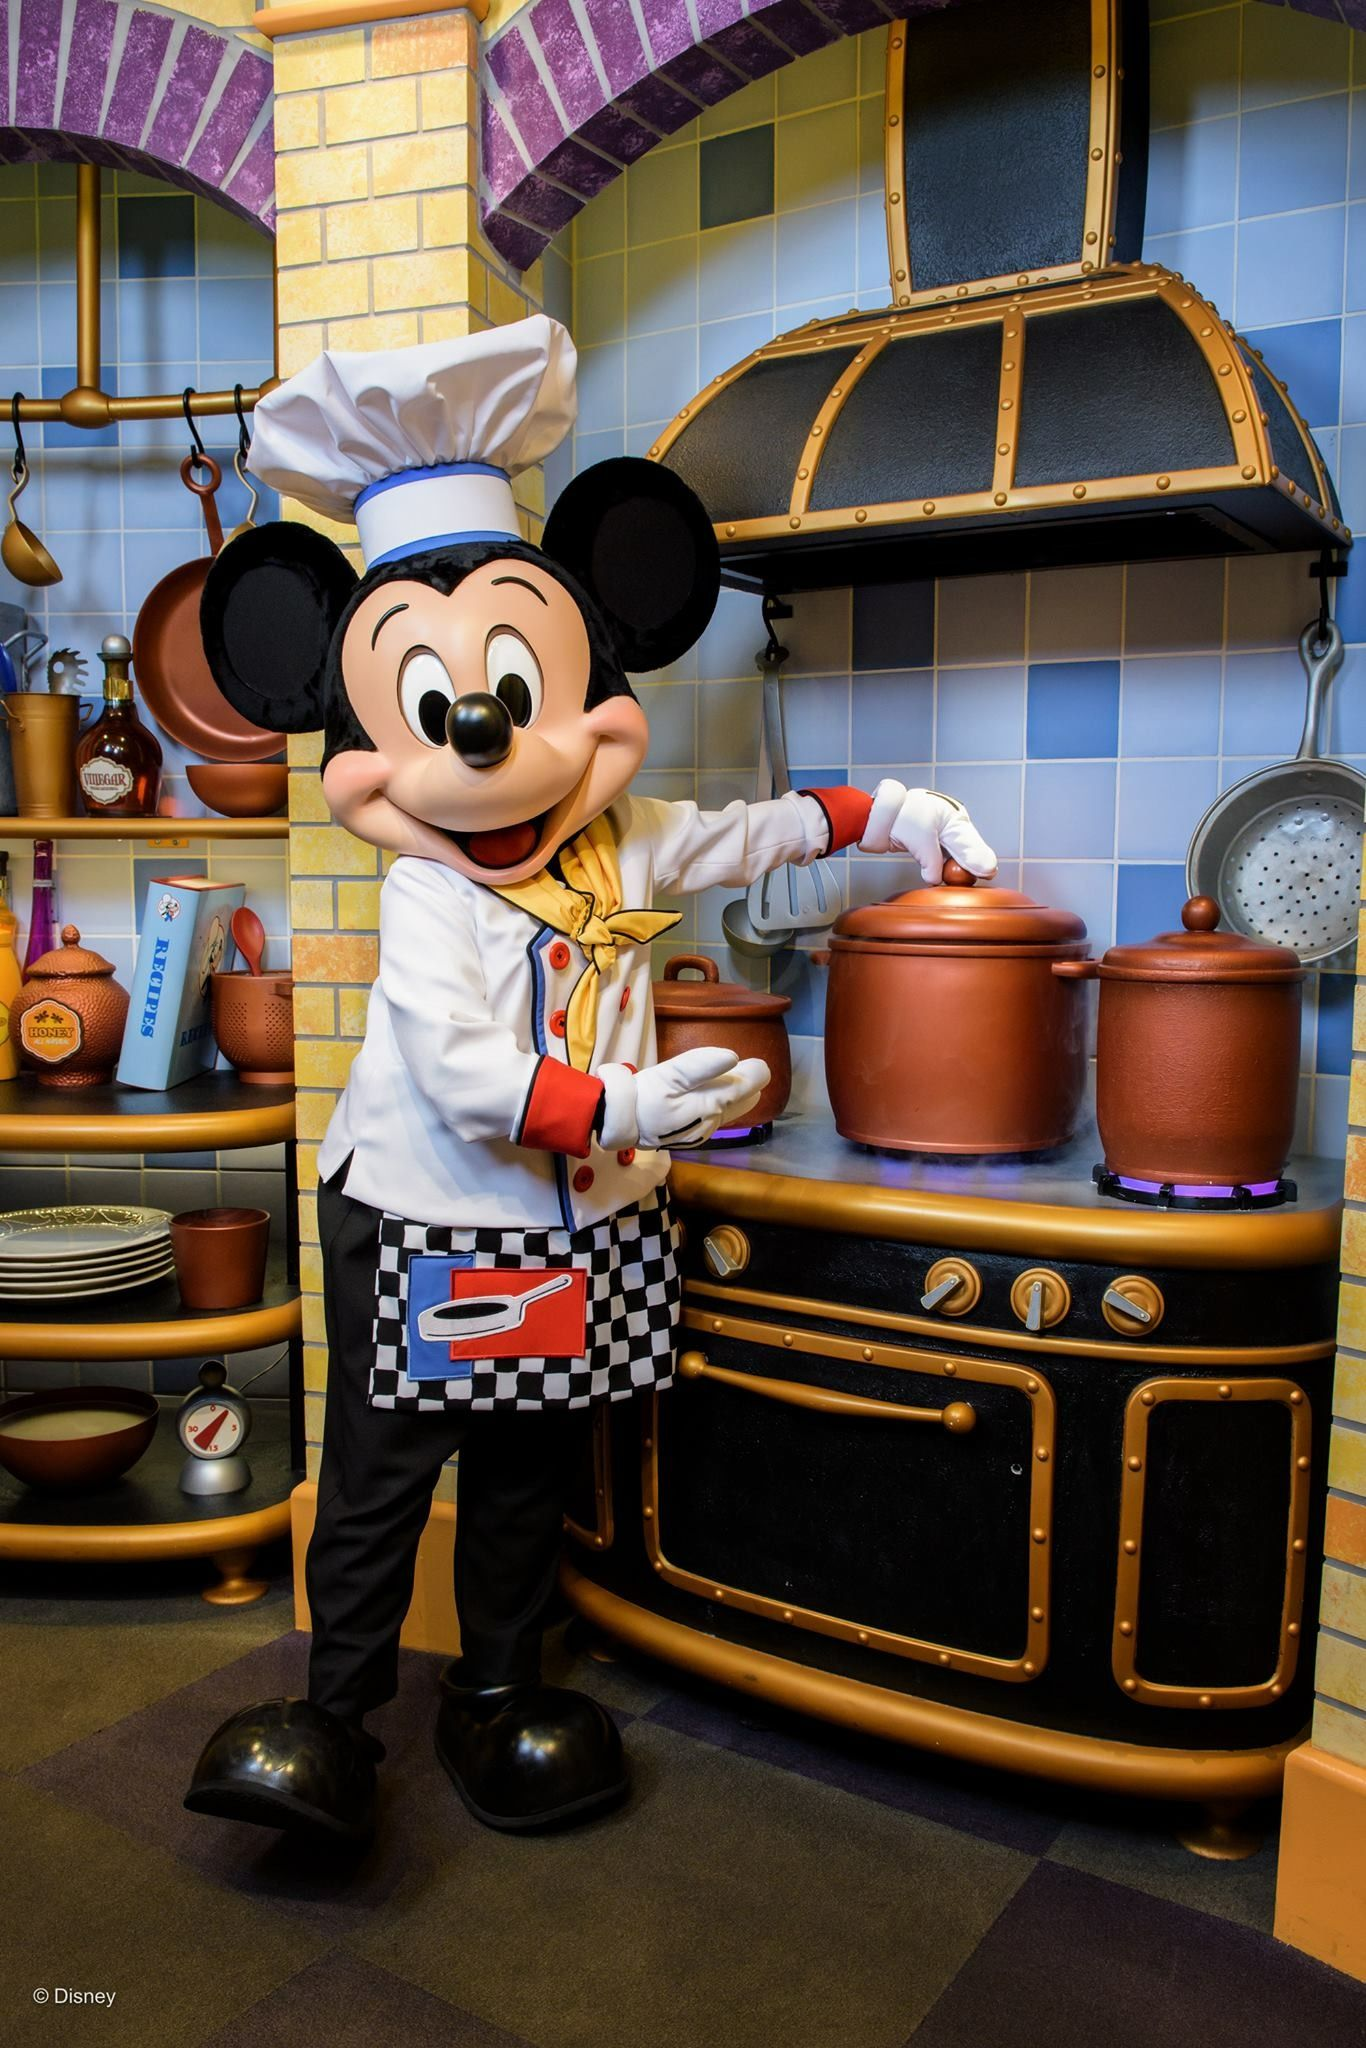 Anaheim Hotels With Kitchen Near Disneyland Small Dining Table Mickey Mouse Helping Out In Goofy 39s My Pal